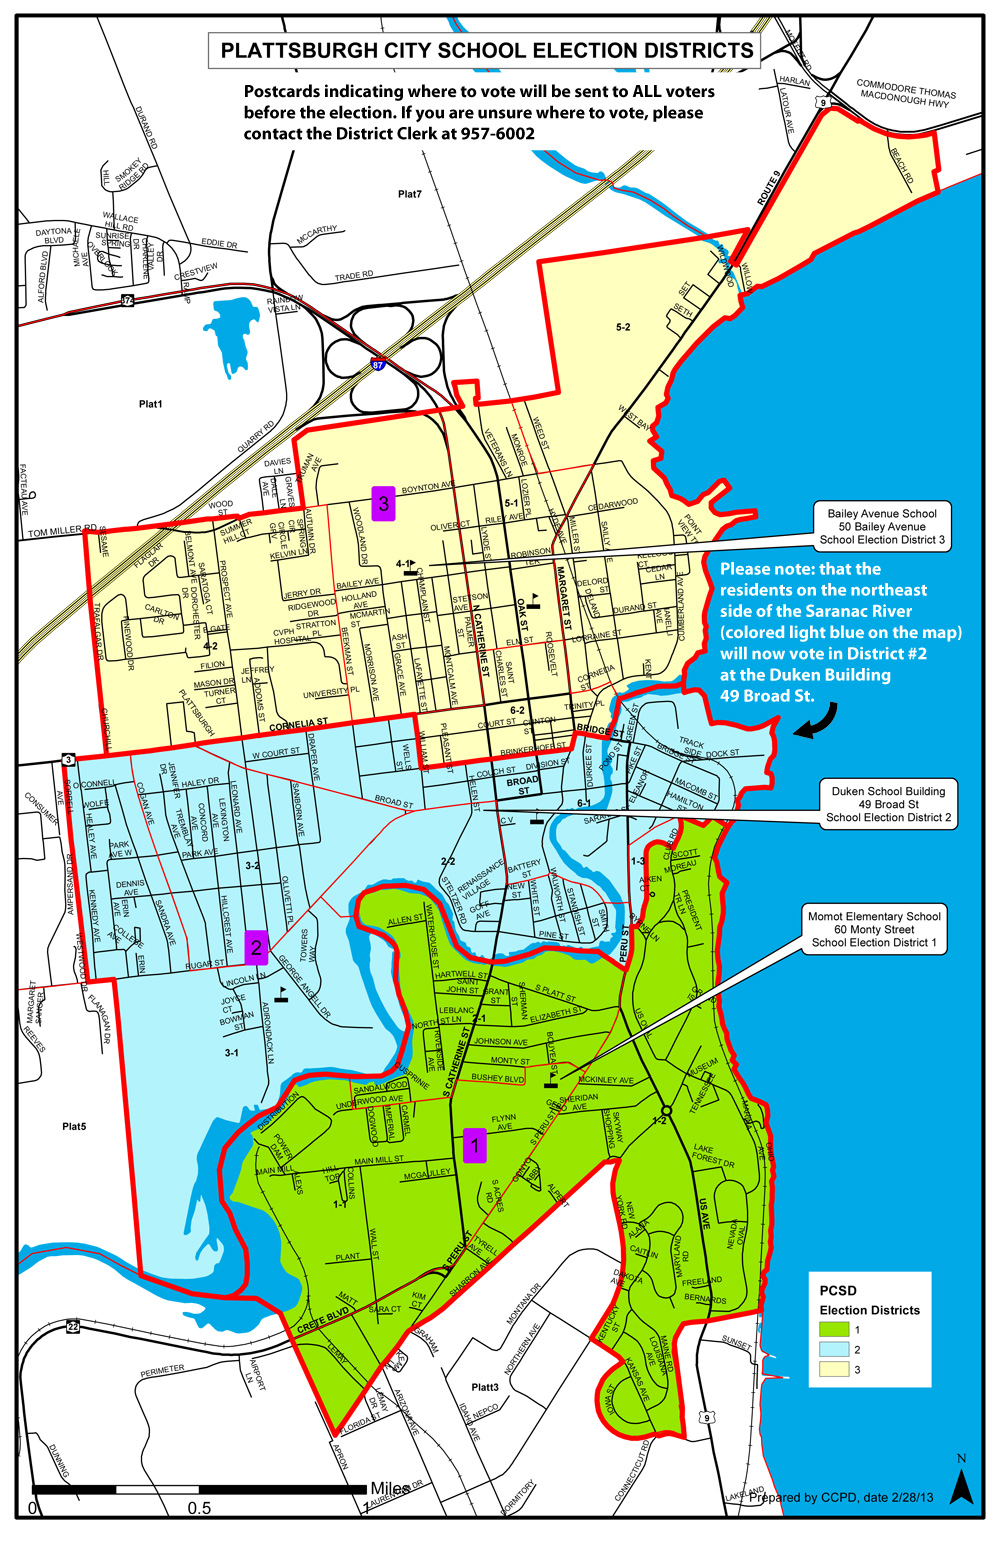 This is a map of the election districts for the Plattsburgh City School District. To find out where your polling station is located, please call the District Clerk at 518-957-6002.